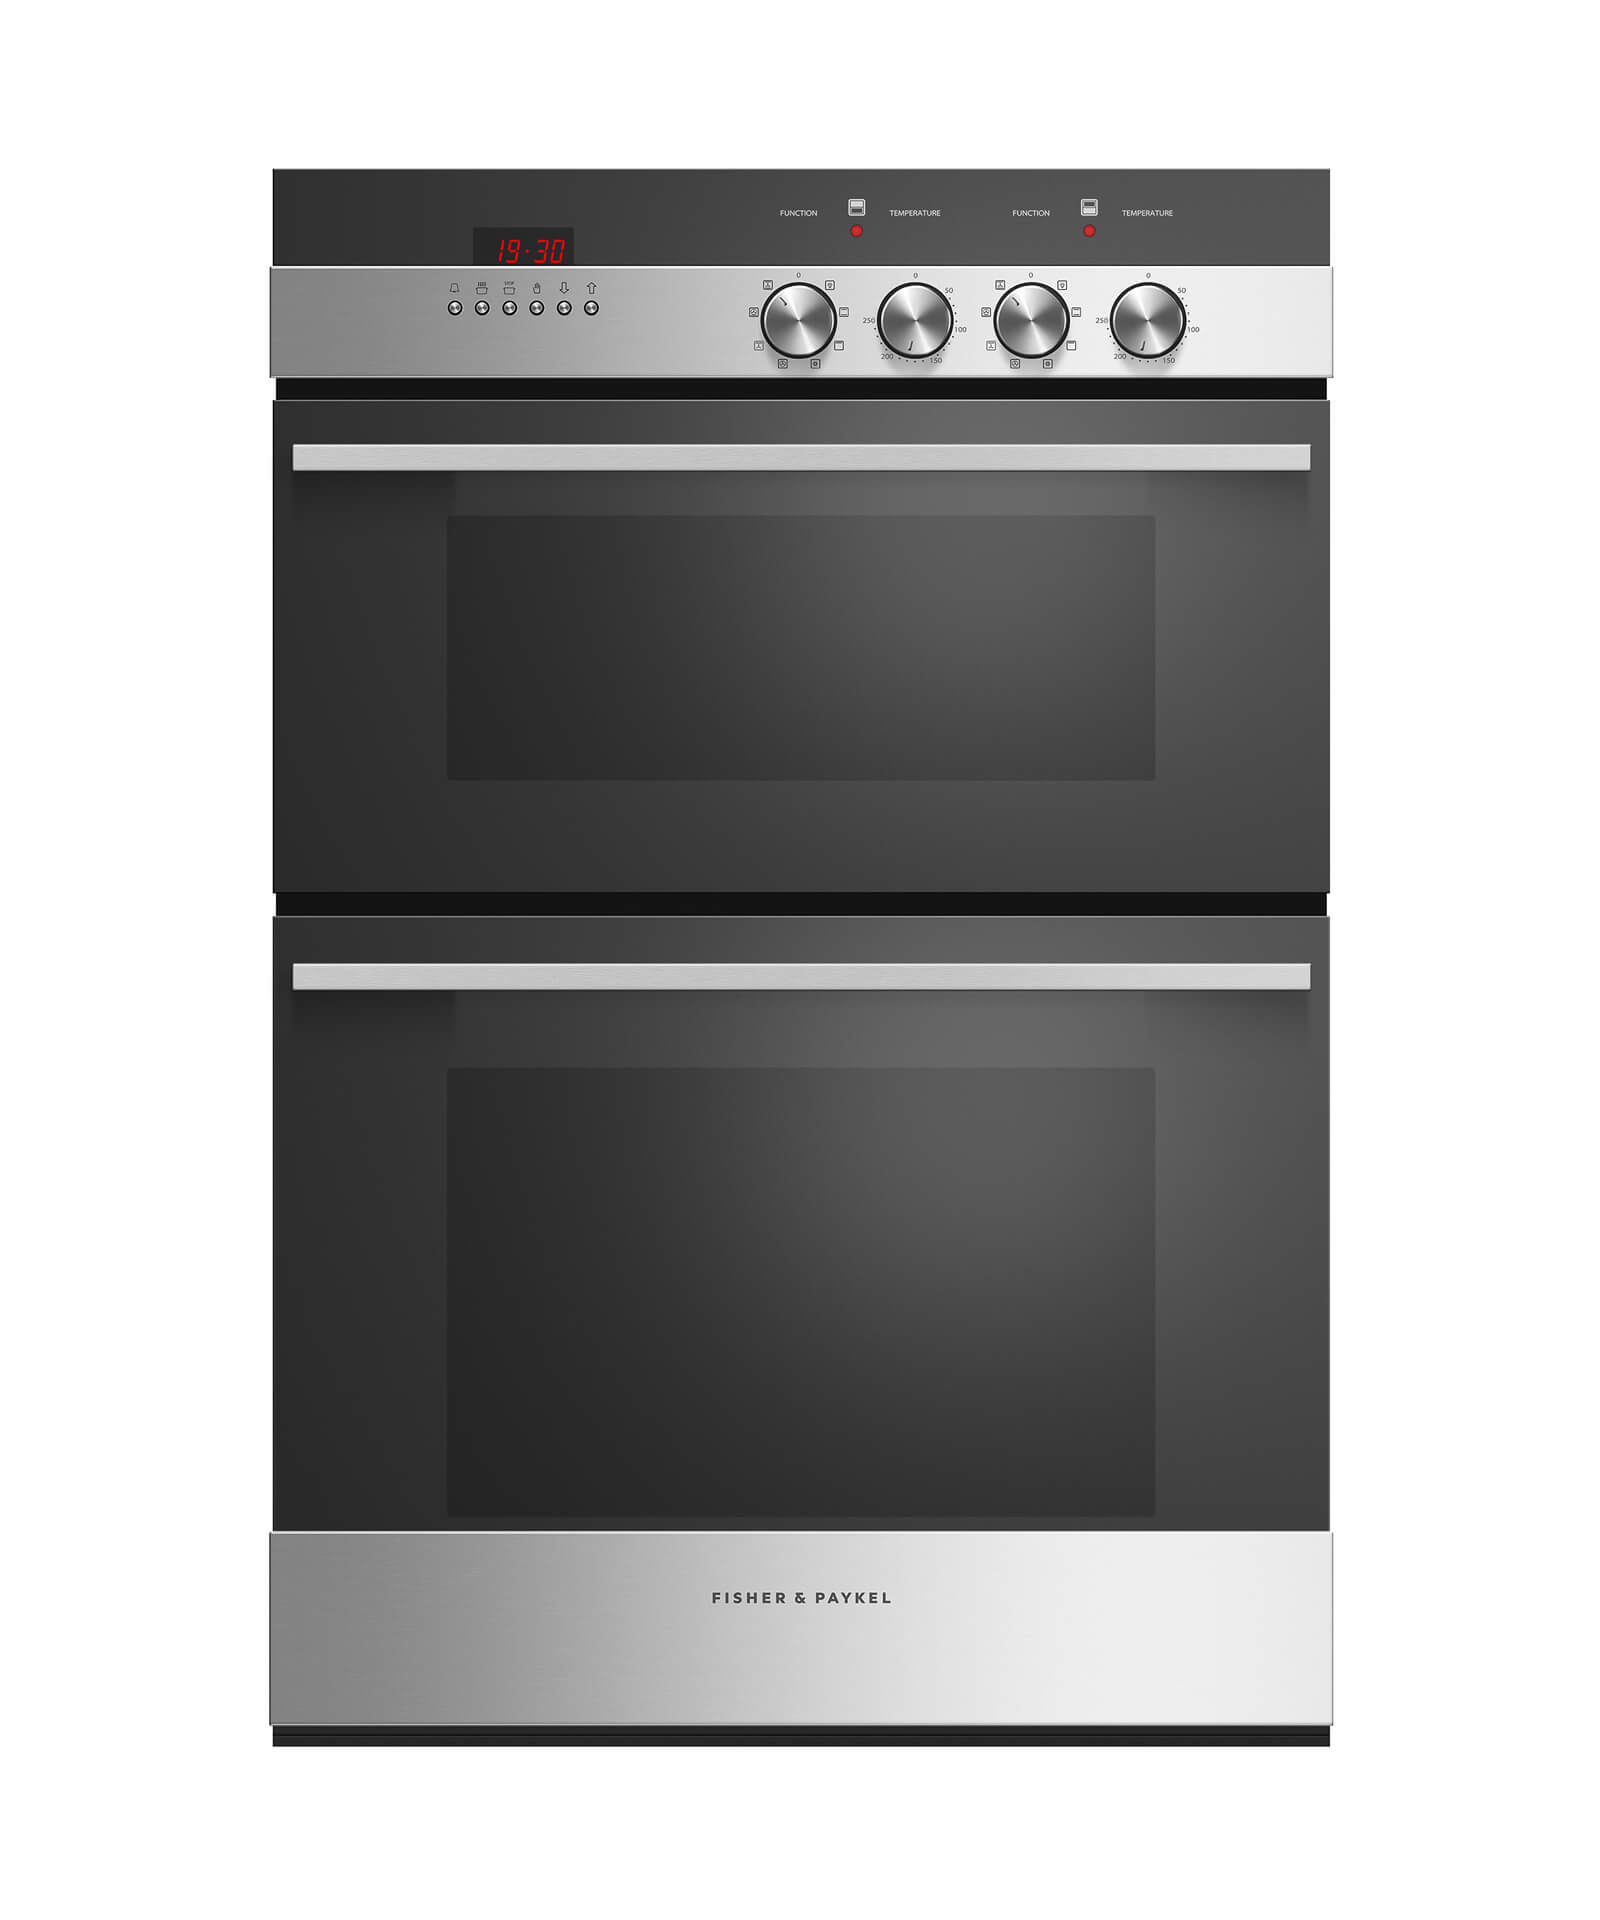 60cm Double 7 Function Built-in Oven, Stainless Steel, Fisher & Paykel Appliances